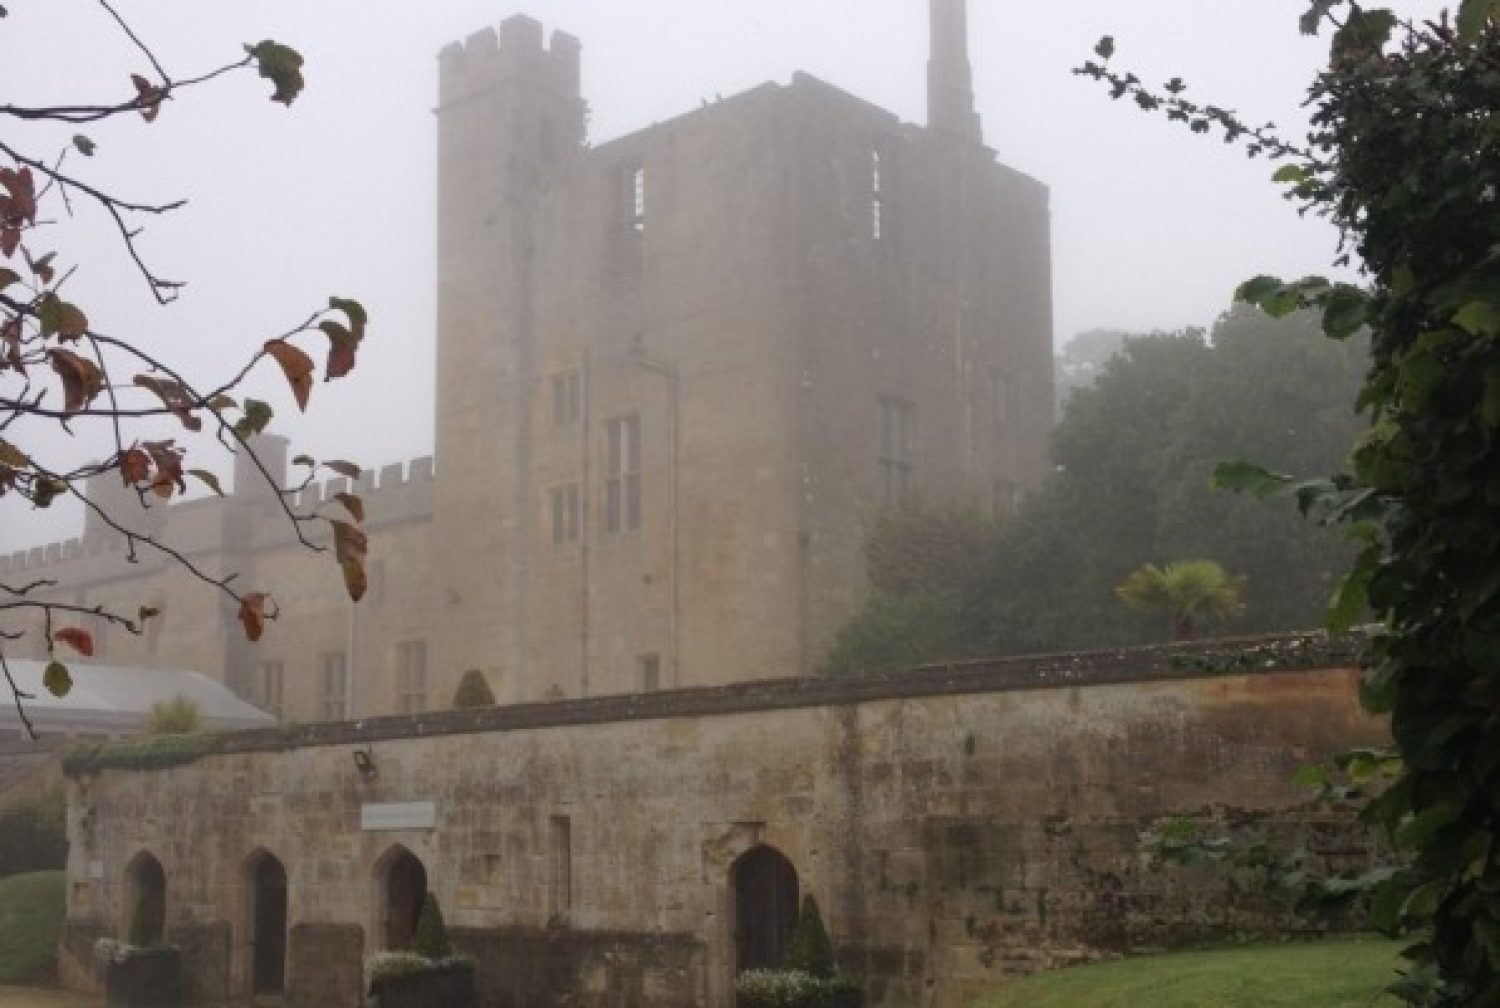 A shot of Sudeley Castle's dungeon tower in the fog